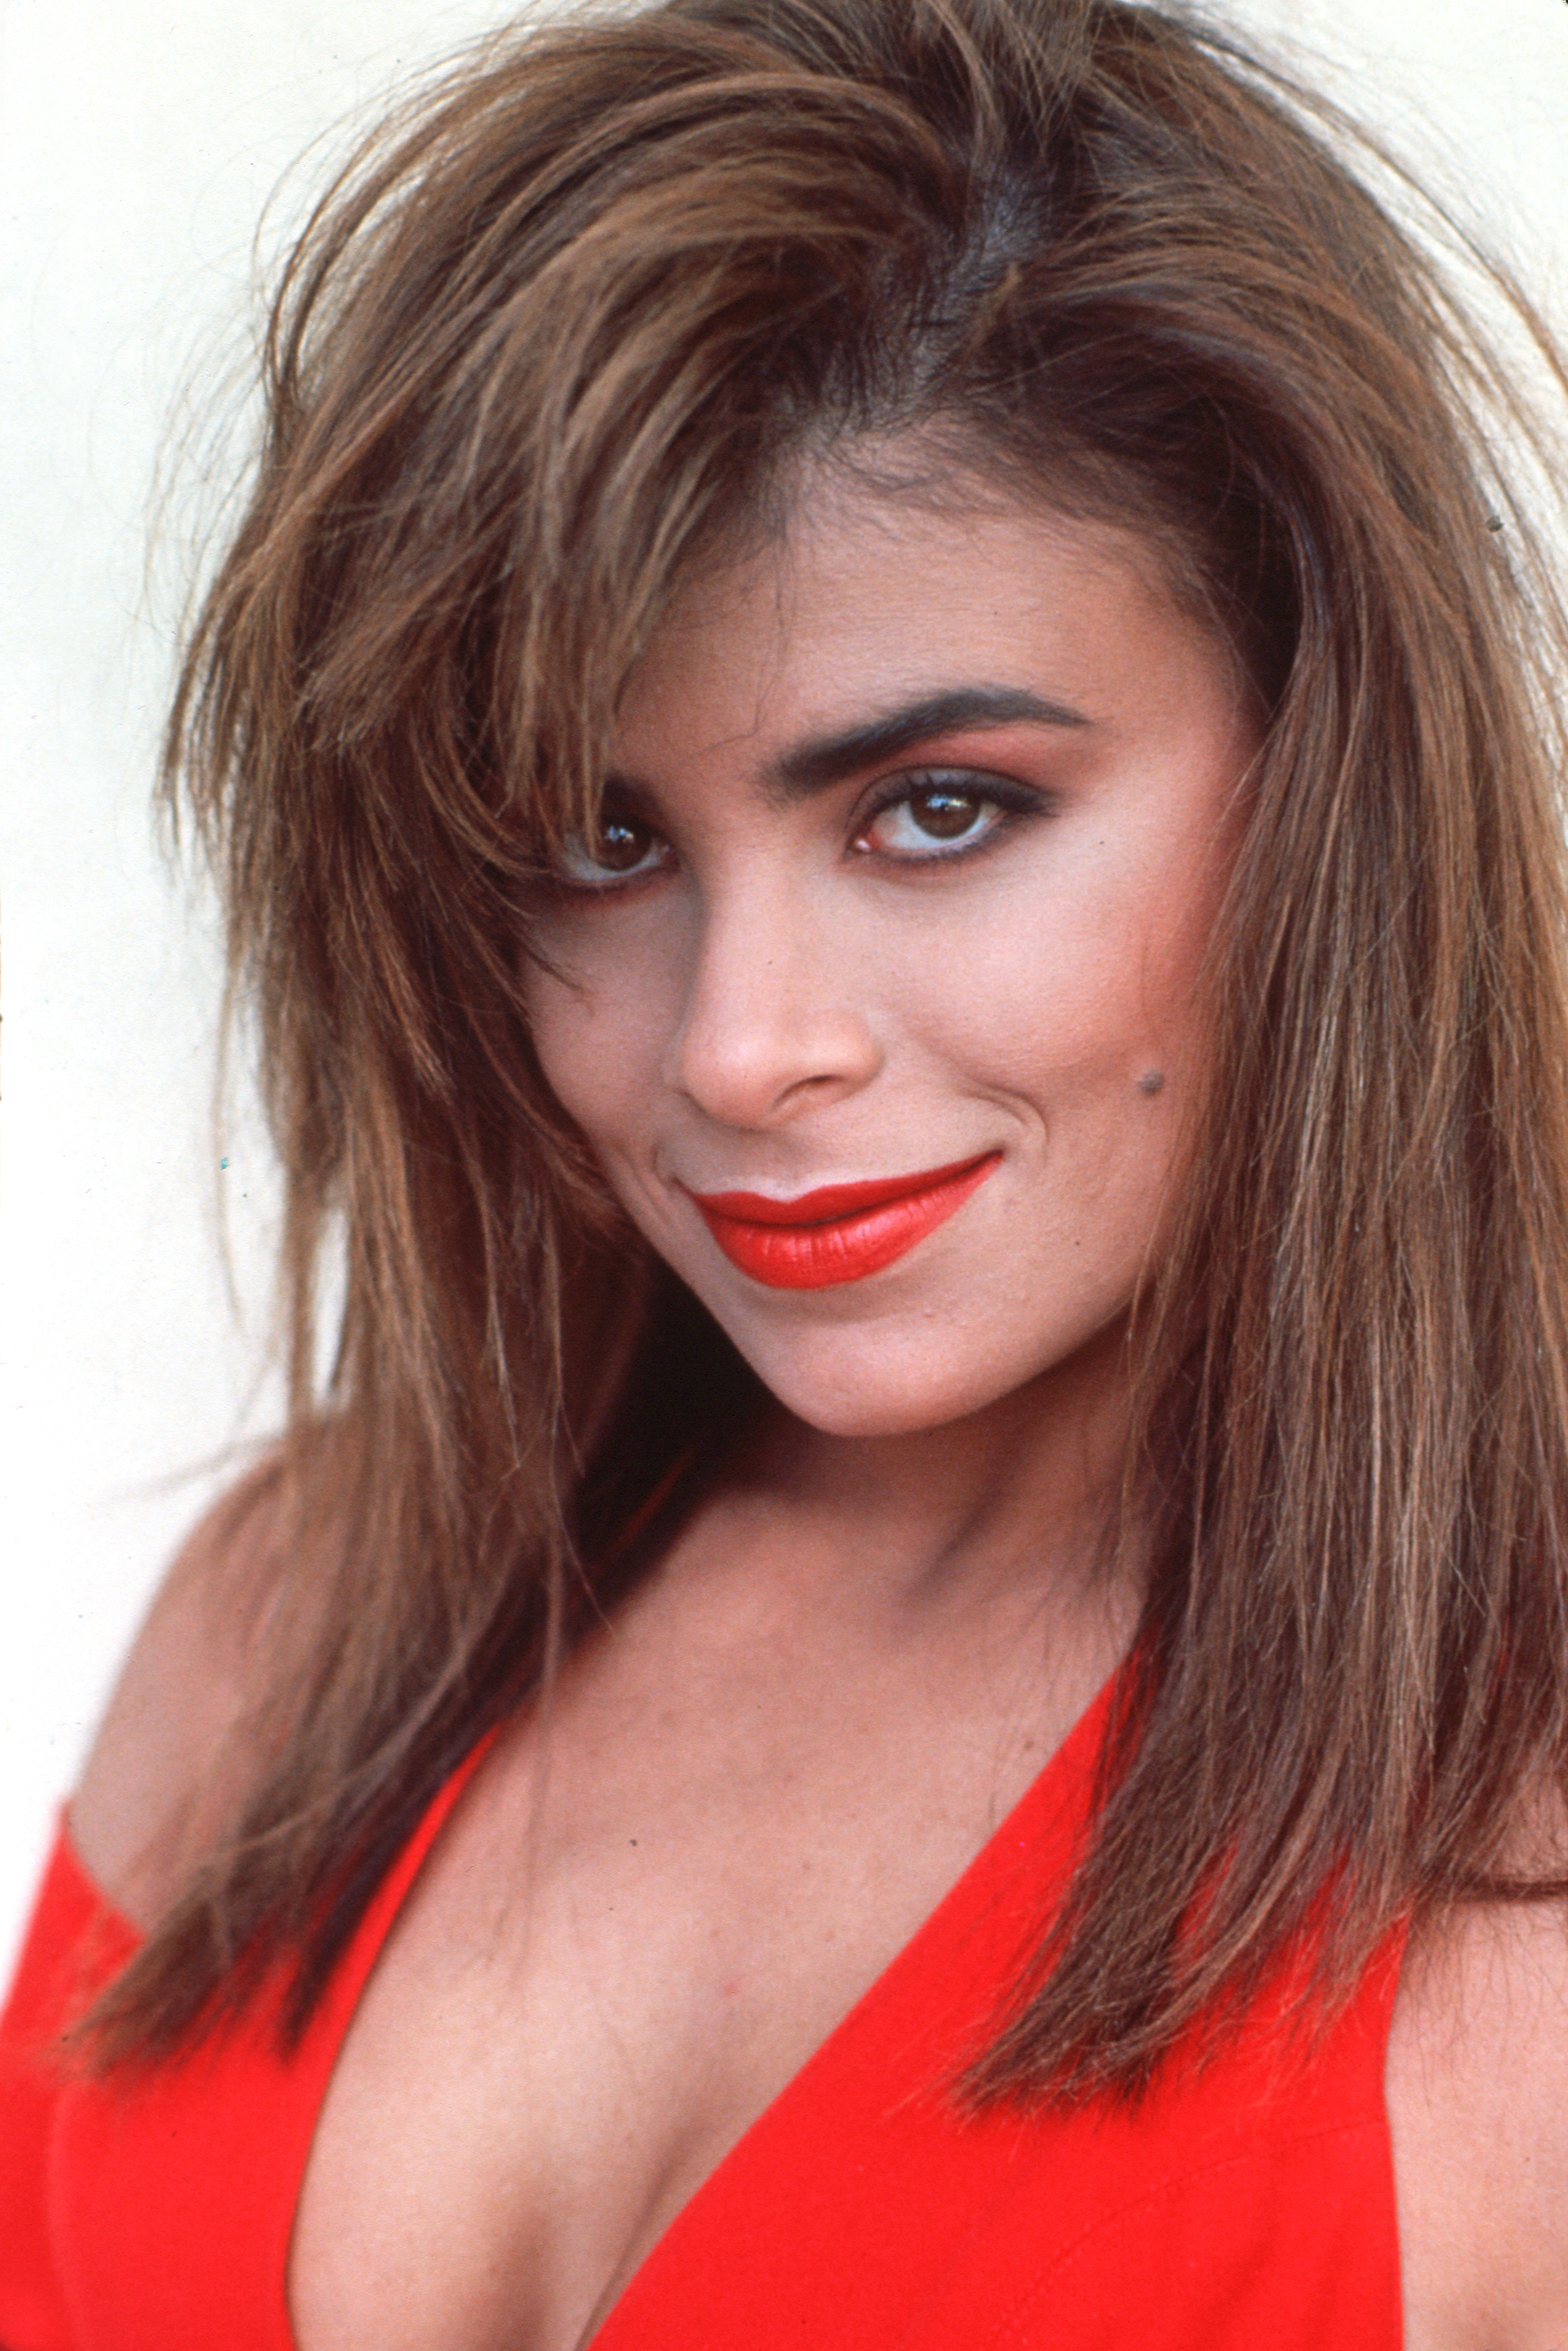 paula abdul cold heartedpaula abdul - opposites attract, paula abdul rush, paula abdul straight up скачать, paula abdul слушать, paula abdul straight up перевод, paula abdul cold hearted, paula abdul скачать, paula abdul 2019, paula abdul forever your girl, paula abdul песни, paula abdul cold hearted перевод, paula abdul клипы, paula abdul wiki, paula abdul rush rush перевод, paula abdul straight up mp3, paula abdul instagram, paula abdul songs, paula abdul opposites attract lyrics, paula abdul rush rush lyrics, paula abdul википедия